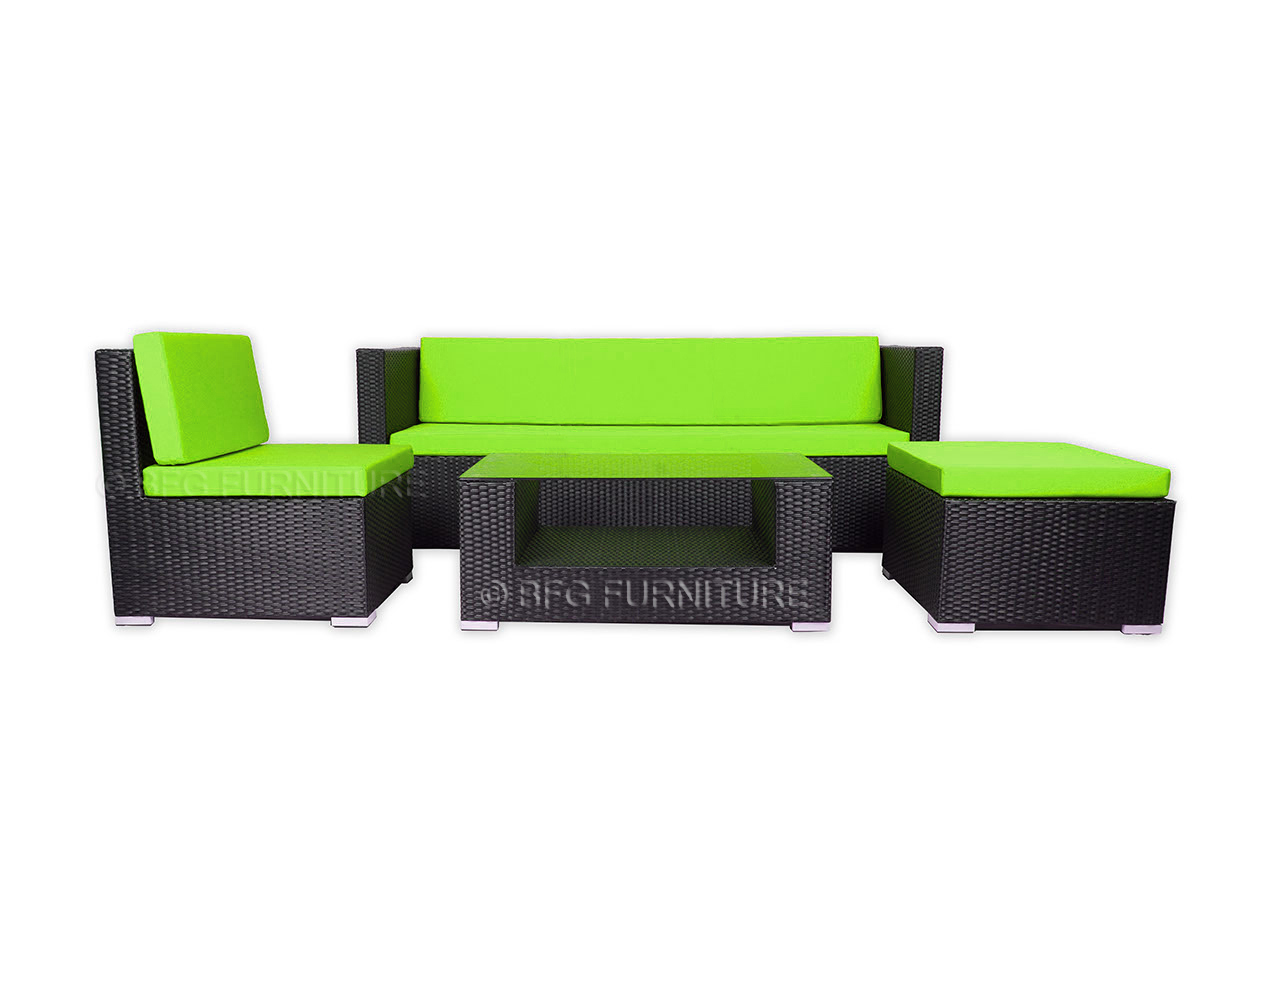 Ponceau Sofa Set - Green Cushions